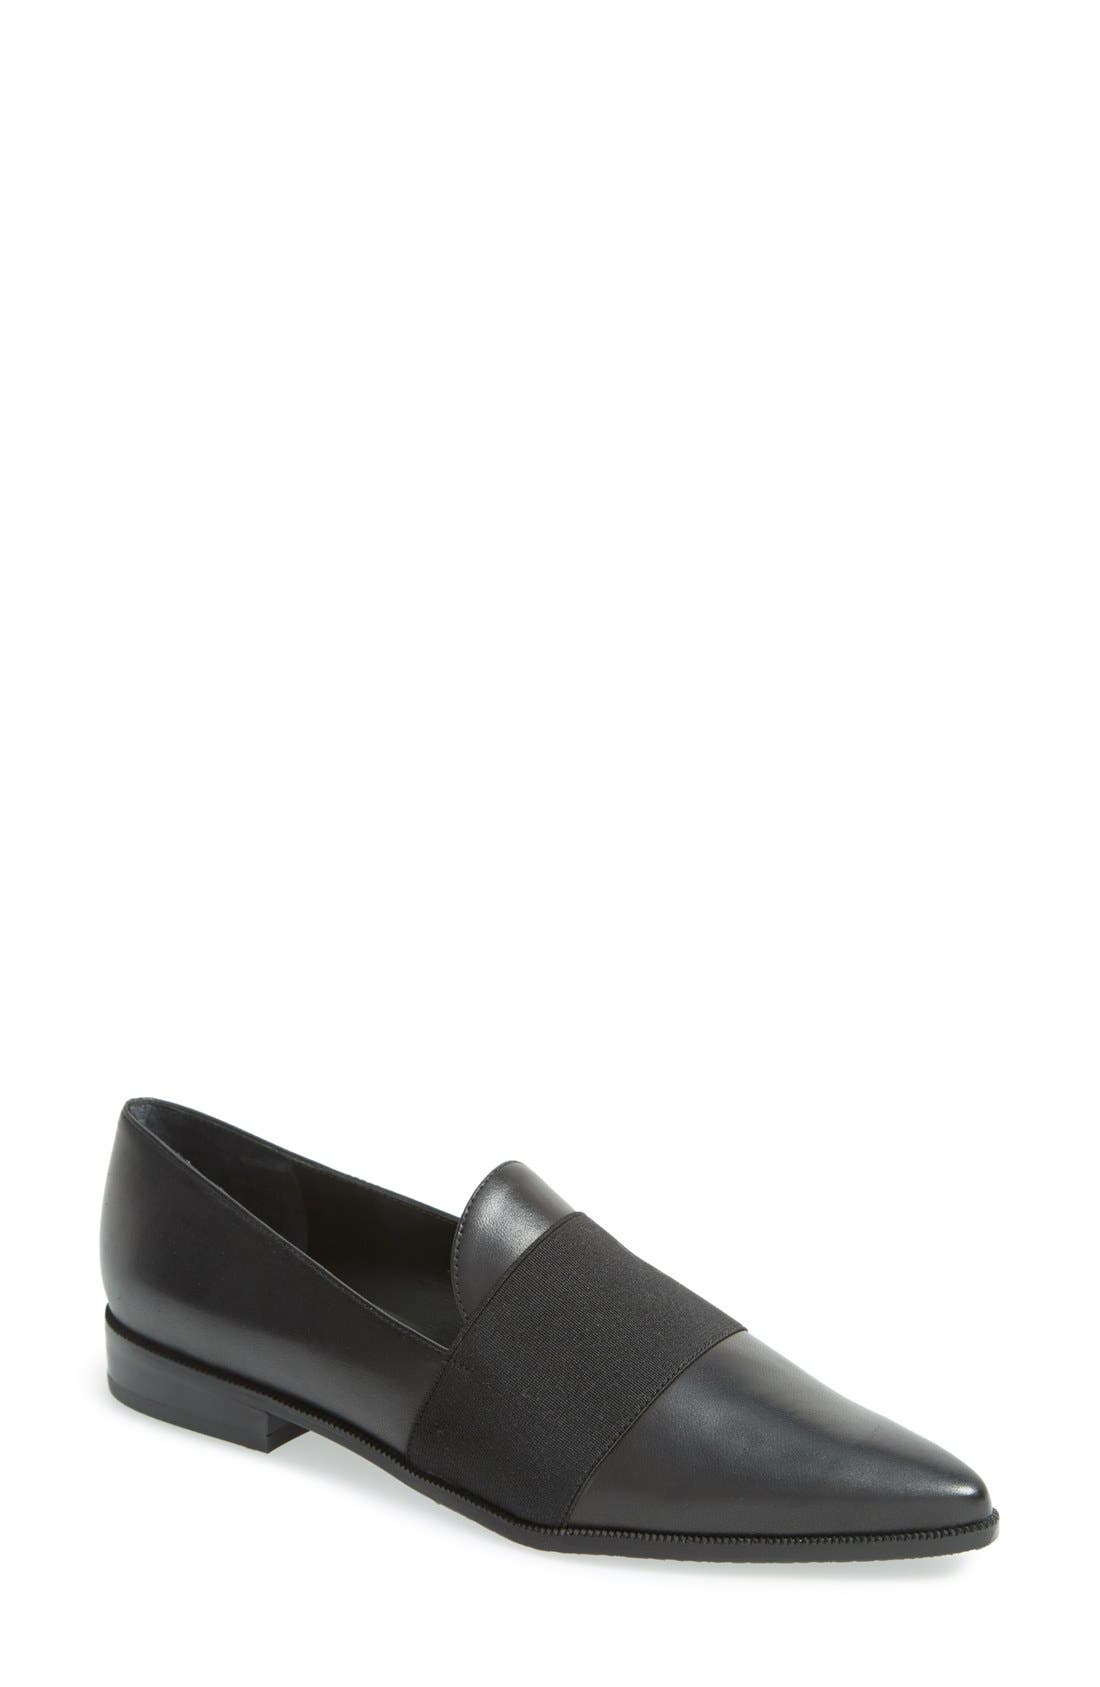 Main Image - Stuart Weitzman 'The Band' Flat (Women)